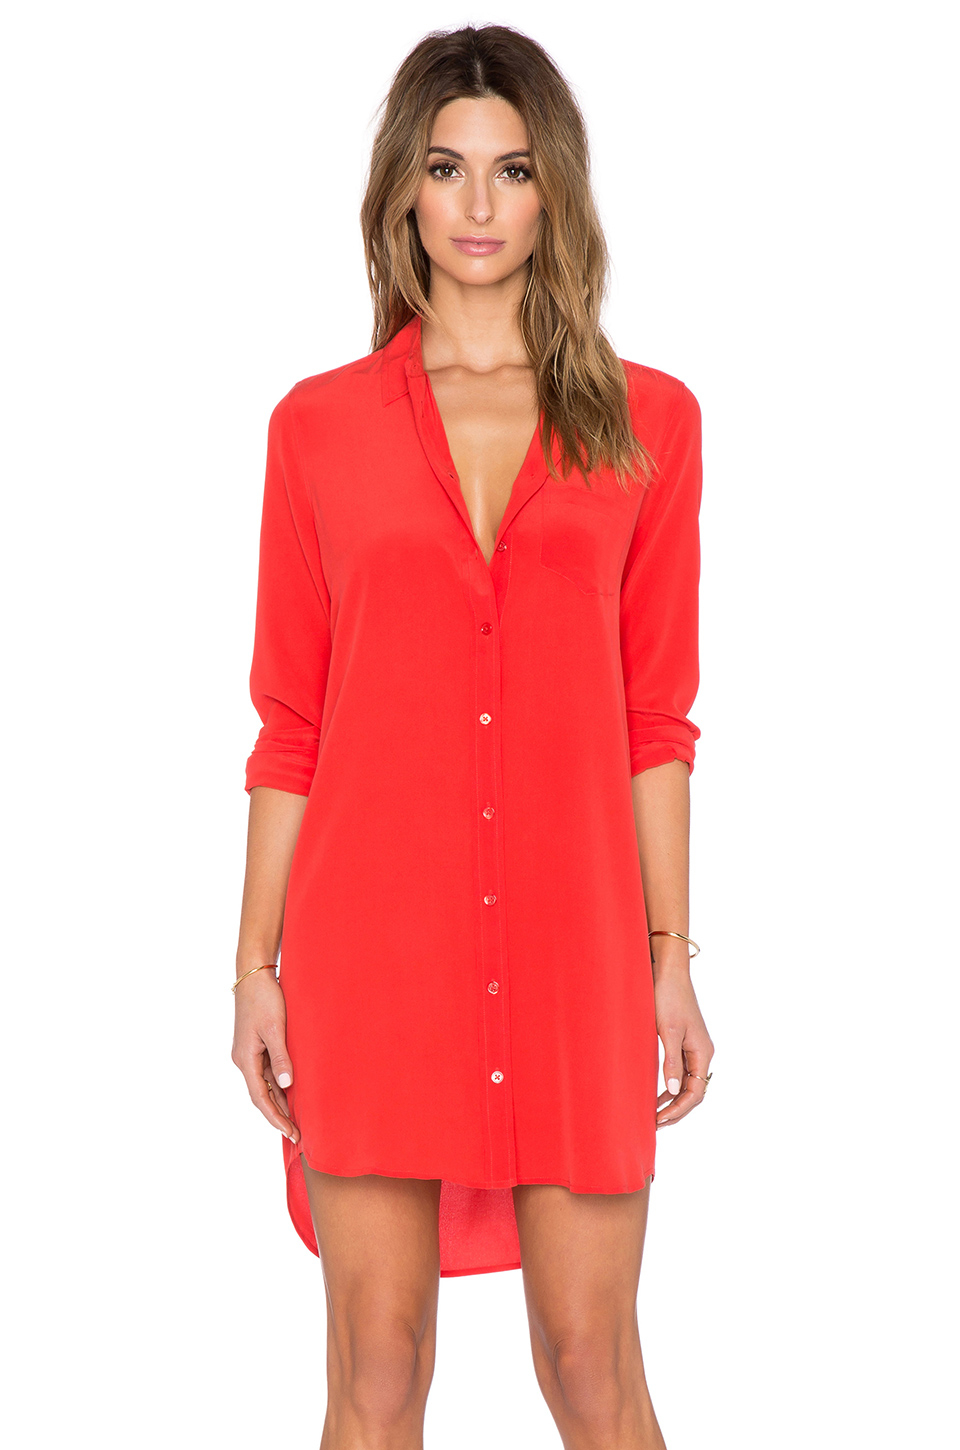 Find a Women's Red Dress, a Juniors Red Dress and a Girls Red Dress at Macy's. Macy's Presents: The Edit - A curated mix of fashion and inspiration Check It Out Free Shipping with $49 purchase + .